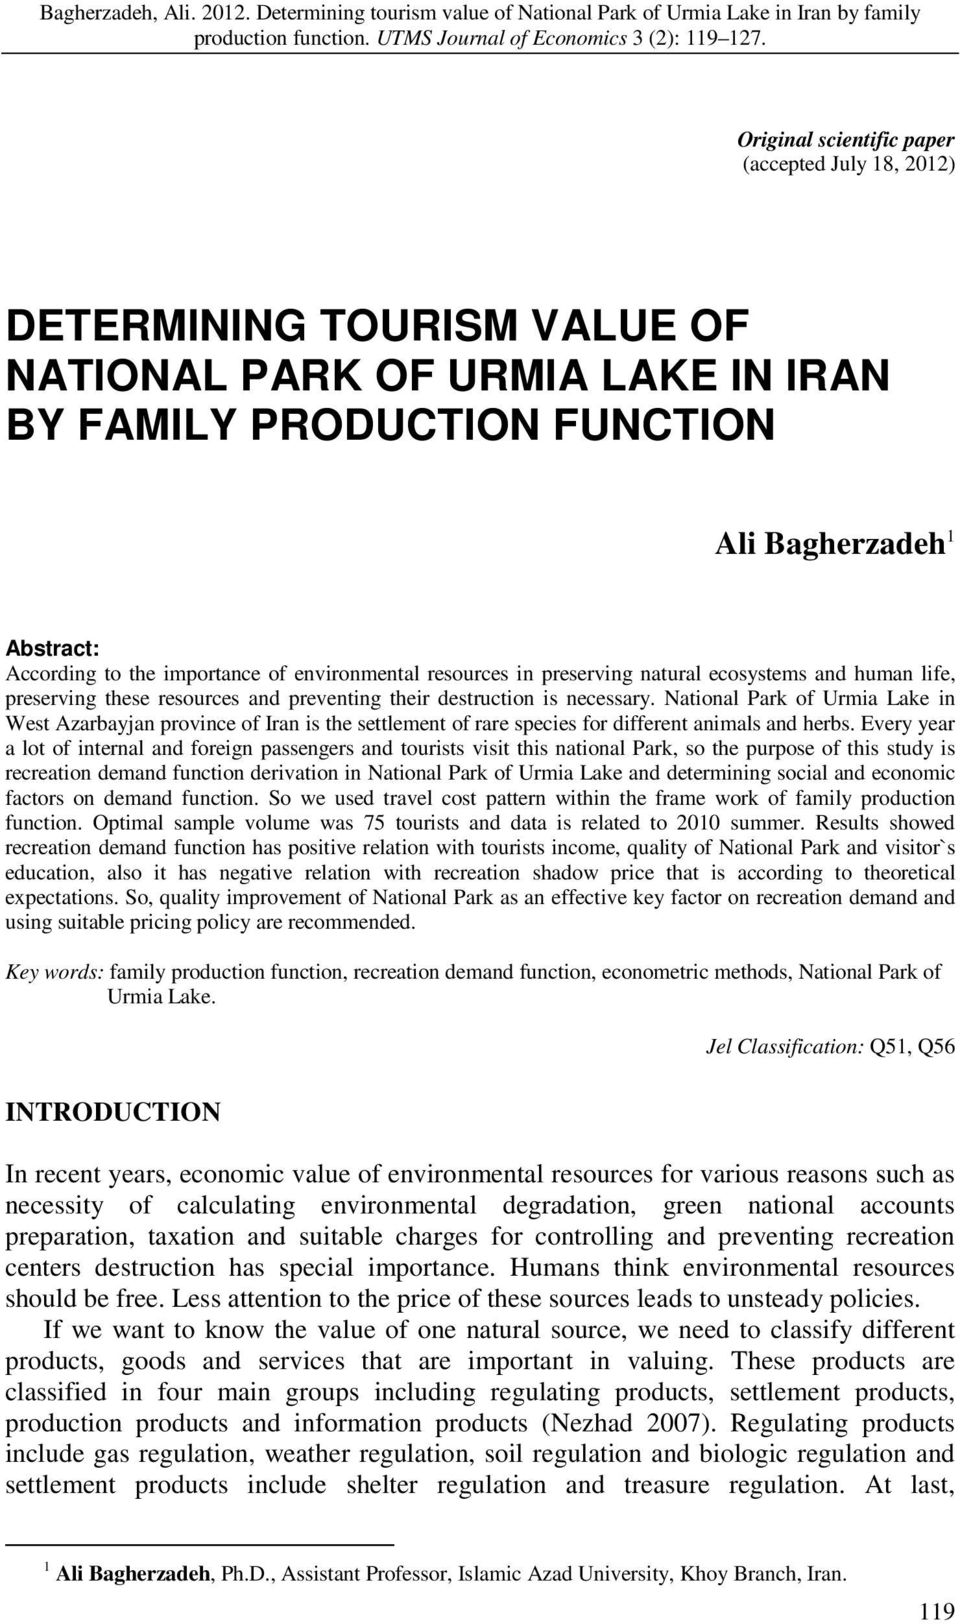 National Park of Urmia Lake in West Azarbayjan province of Iran is the settlement of rare species for different animals and herbs.